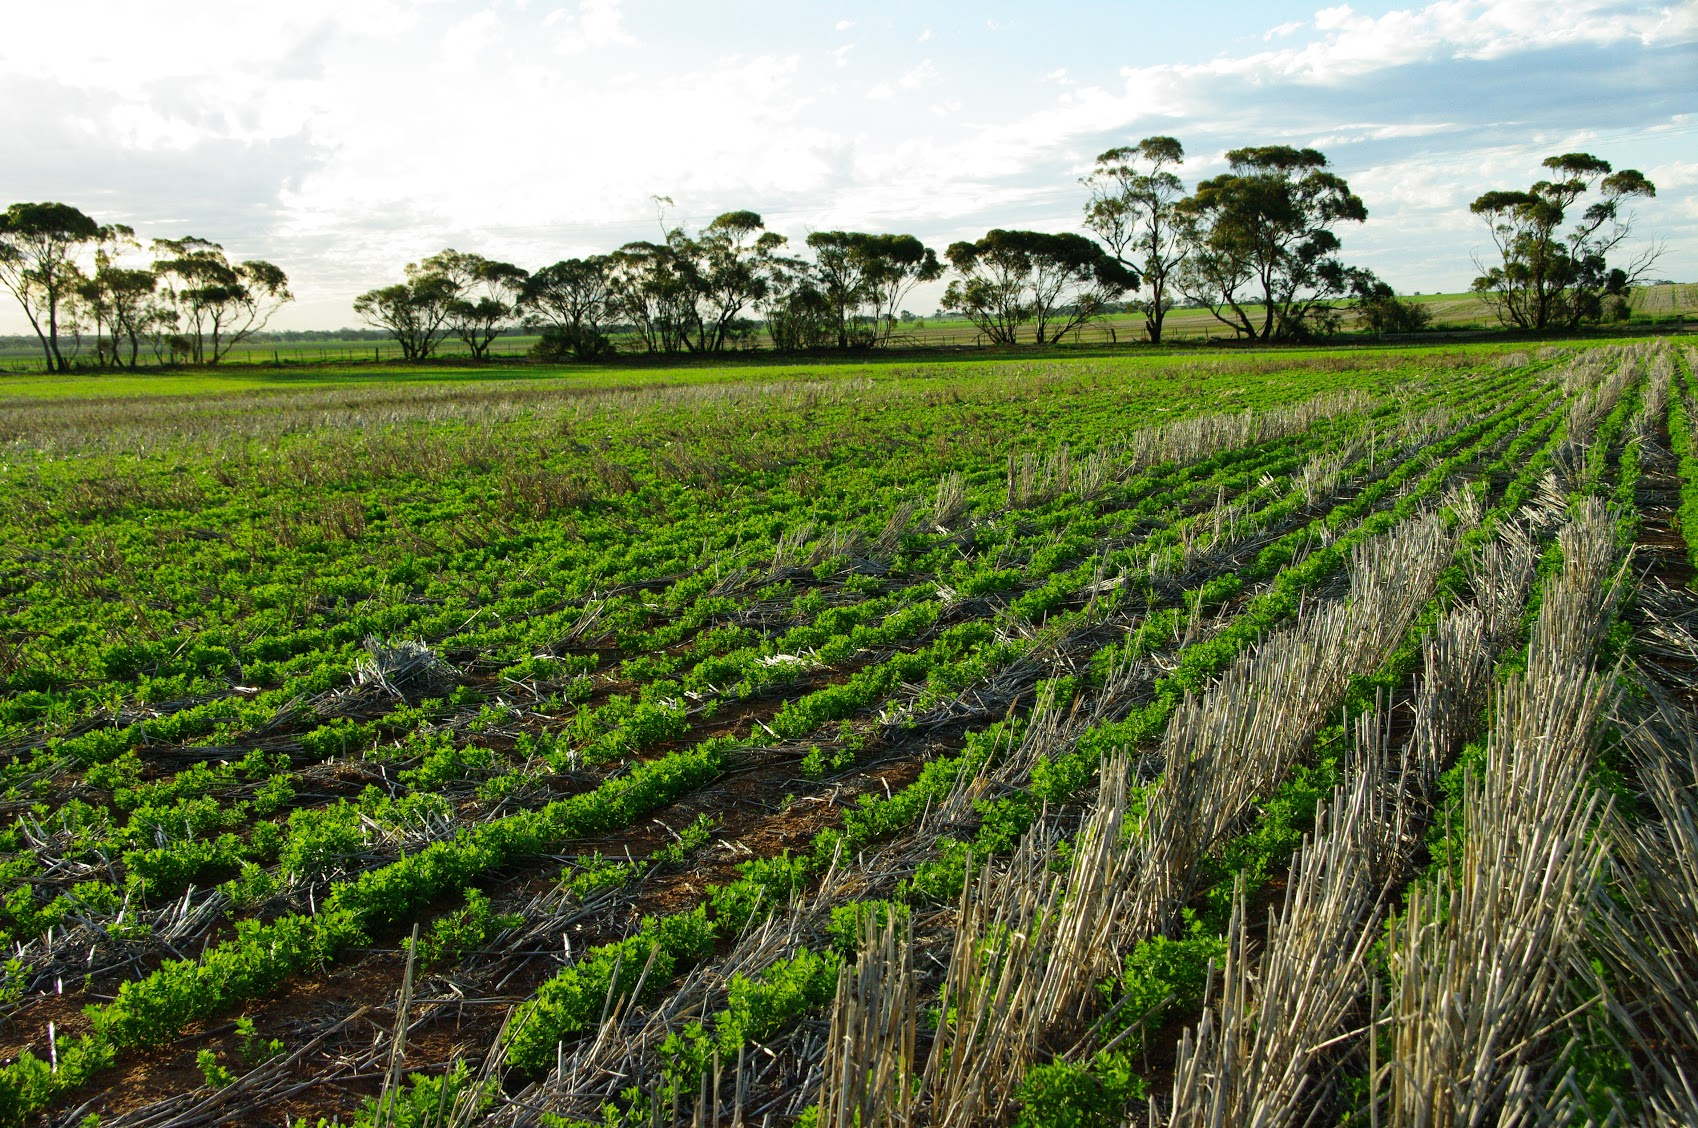 Grant usually keeps a two year break between cereal crops to maintain effective control of diseases. Pulse crops sown into standing stubble offer the best combination of tactics to tackle ryegrass in-crop using grass selective herbicides and desiccation.